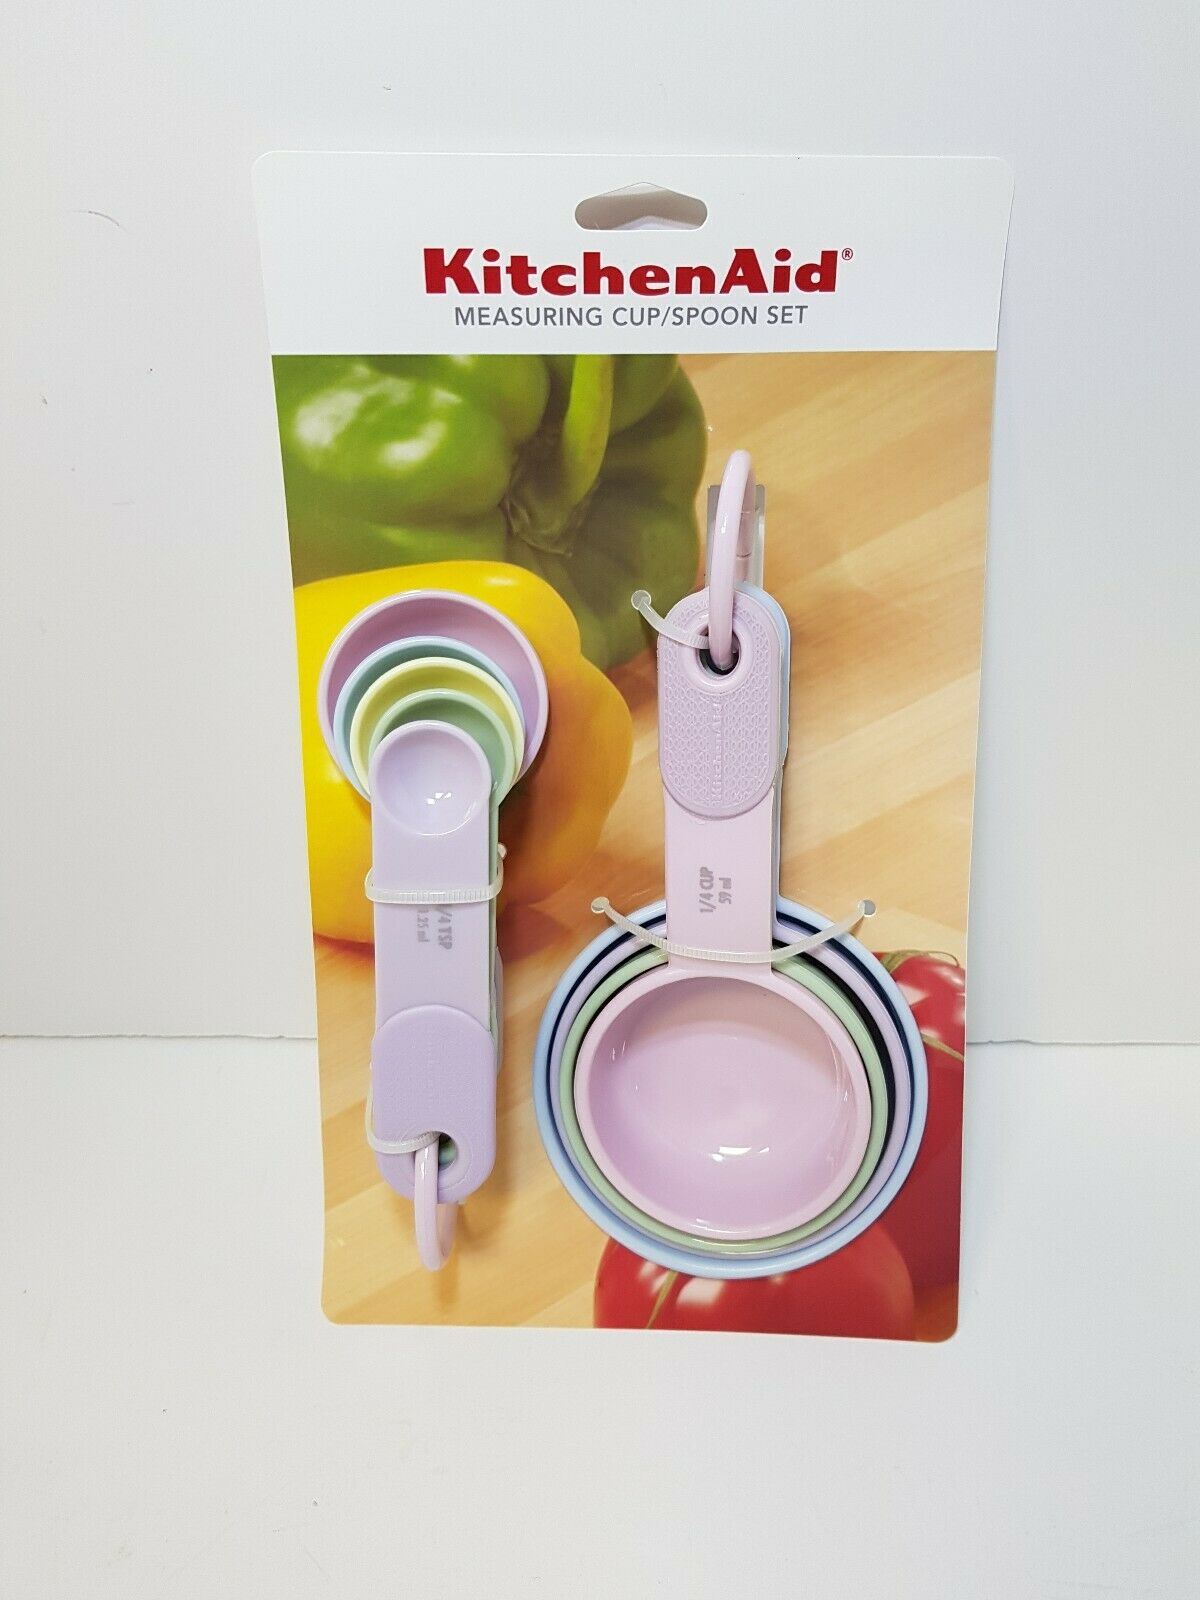 KITCHENAID PINK AND PASTEL COLORS MEASURING CUPS AND MEASURING SPOONS 9PC  SET